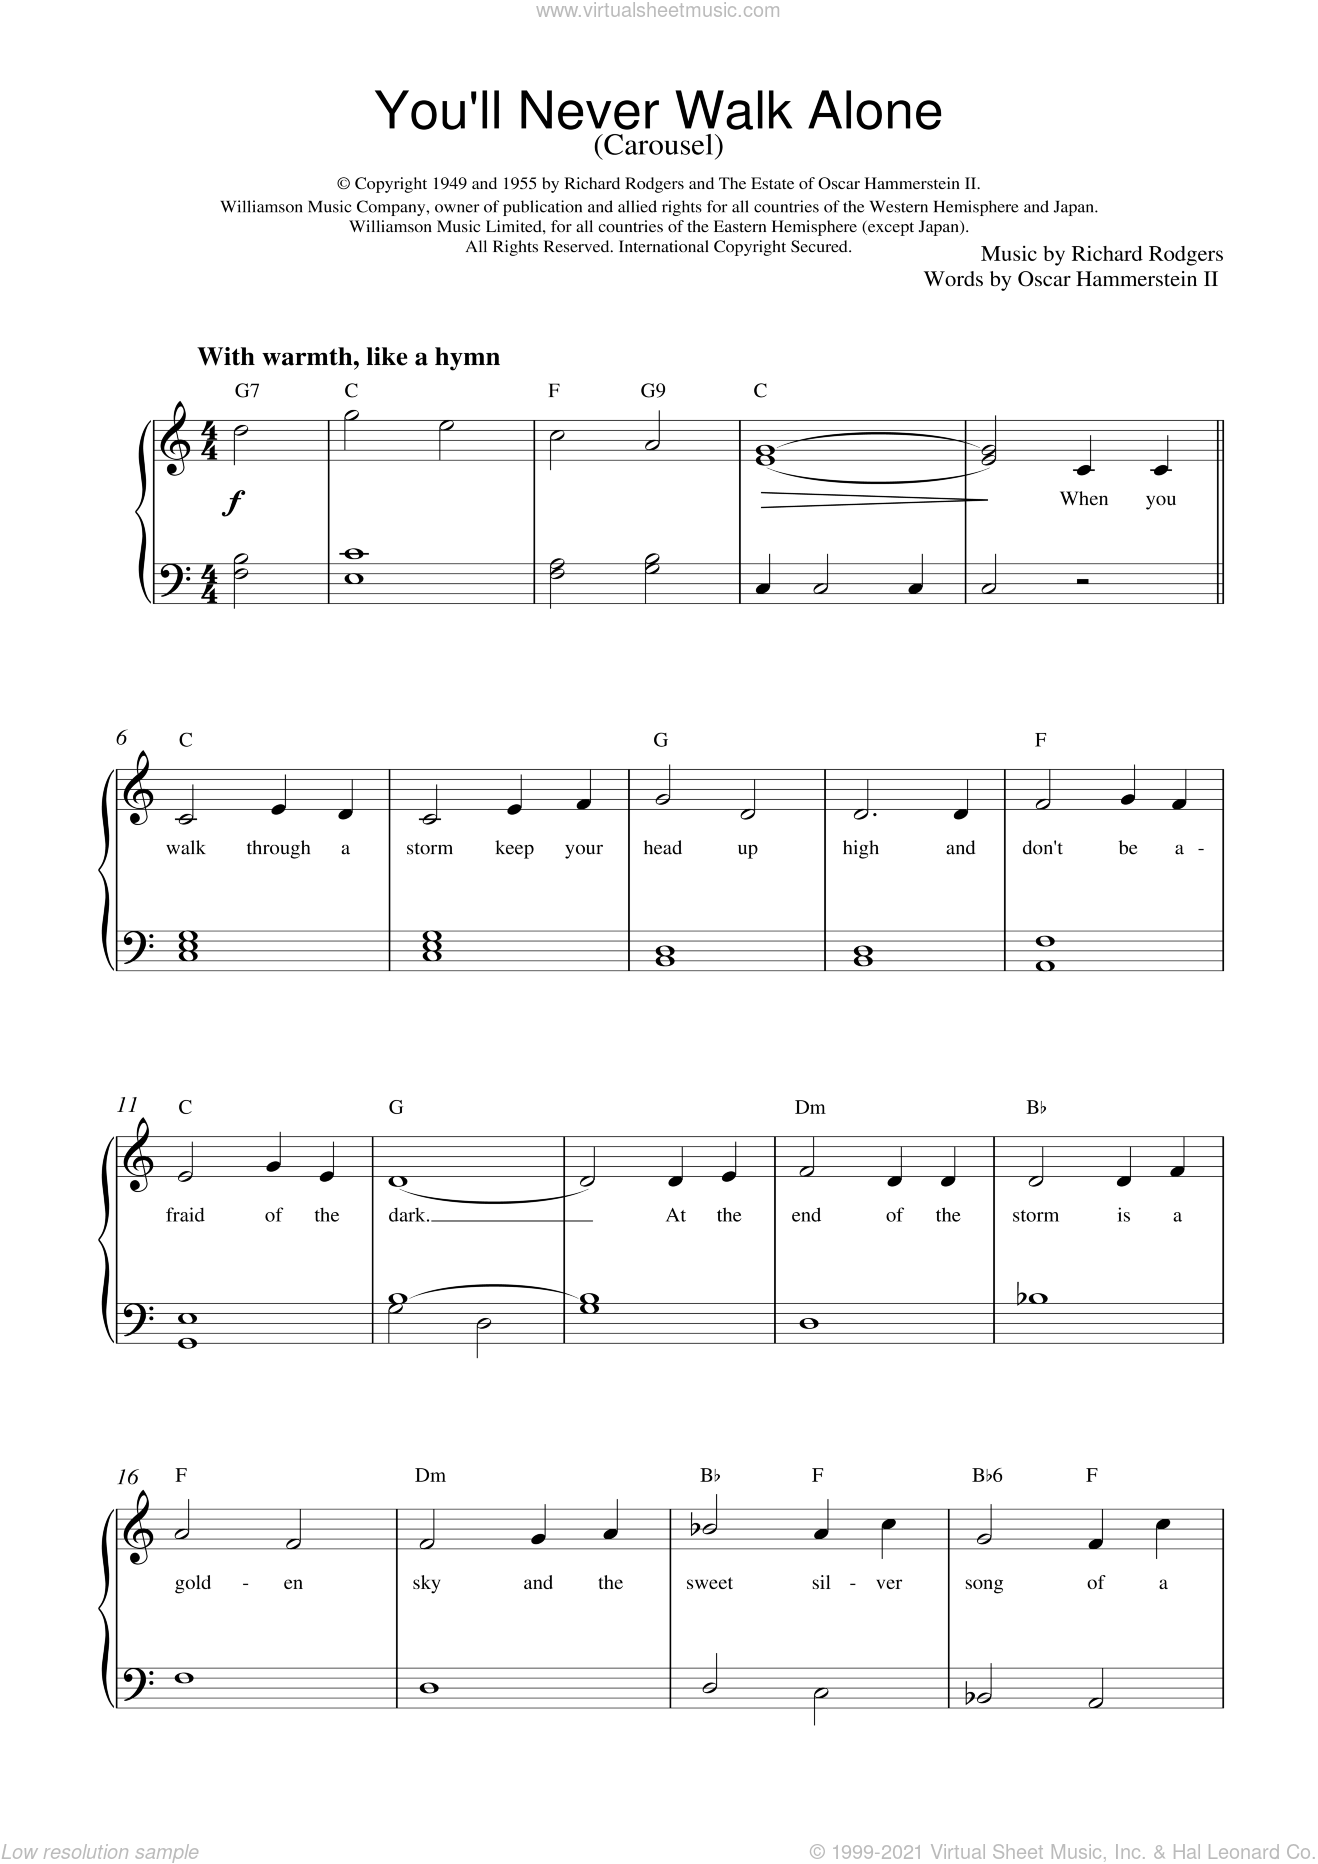 You'll Never Walk Alone sheet music for piano solo by Richard Rodgers, Rodgers & Hammerstein and Oscar II Hammerstein. Score Image Preview.